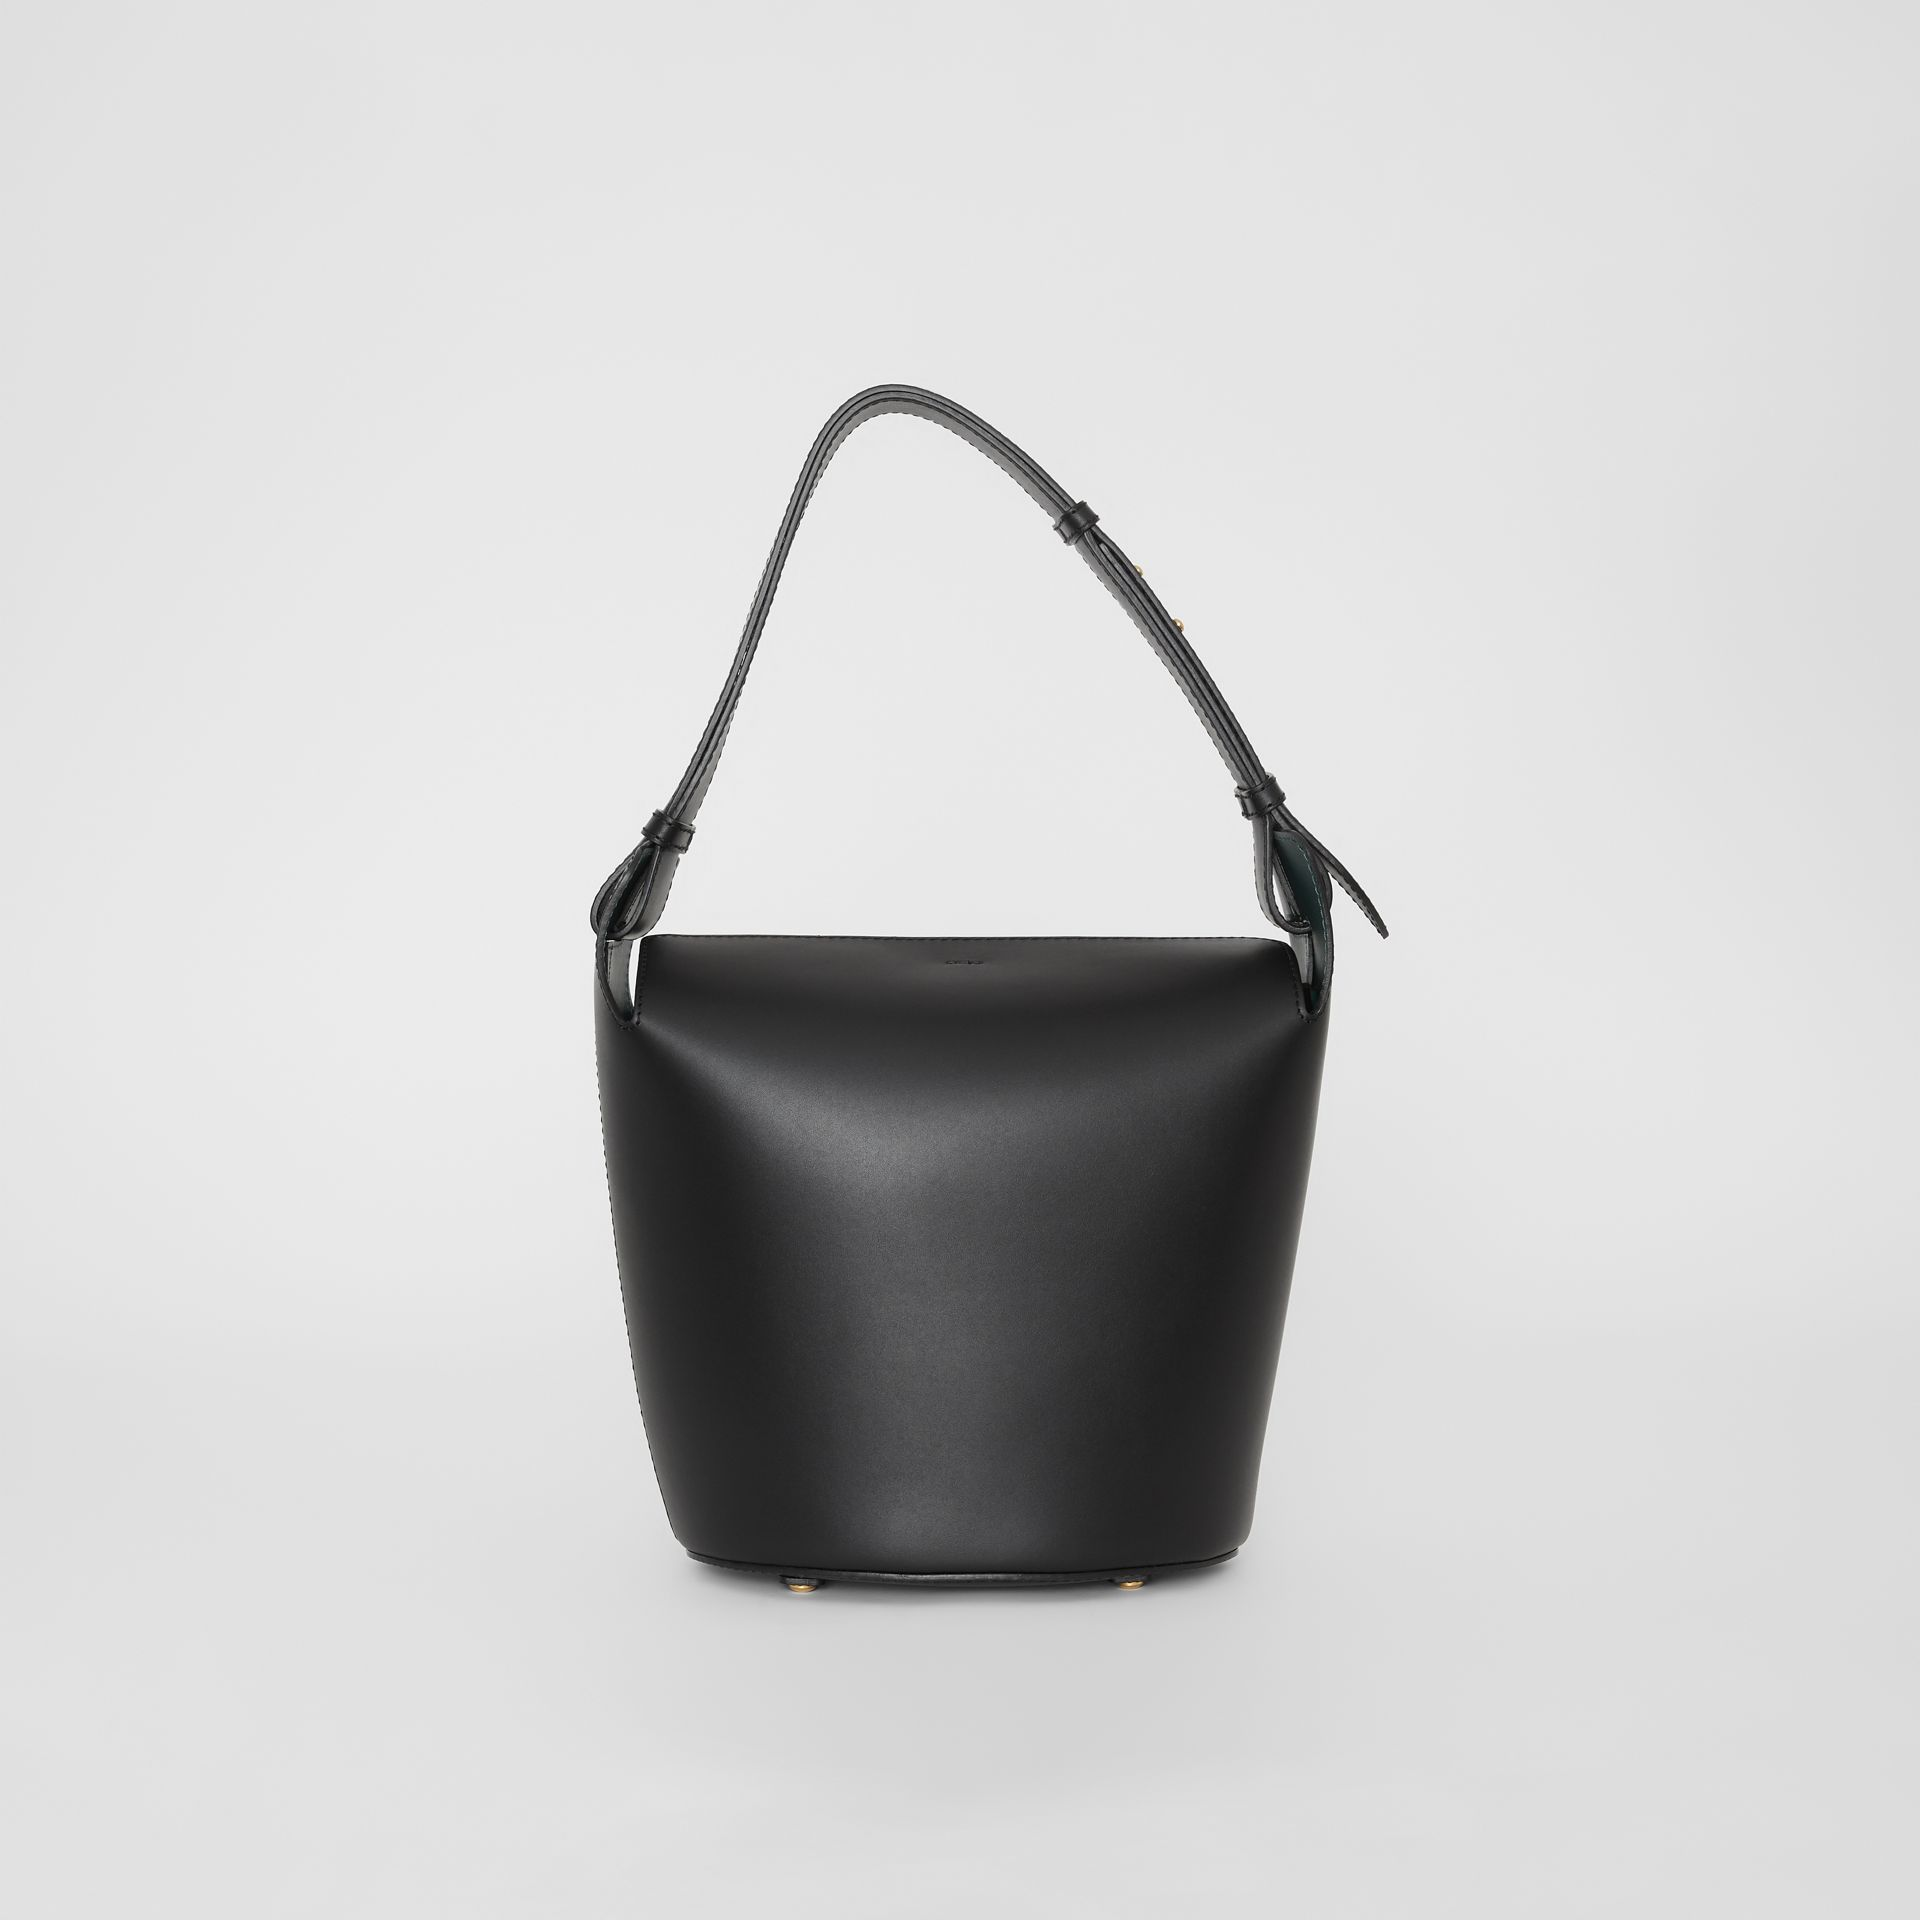 Sac The Bucket moyen en cuir (Noir) - Femme | Burberry - photo de la galerie 7